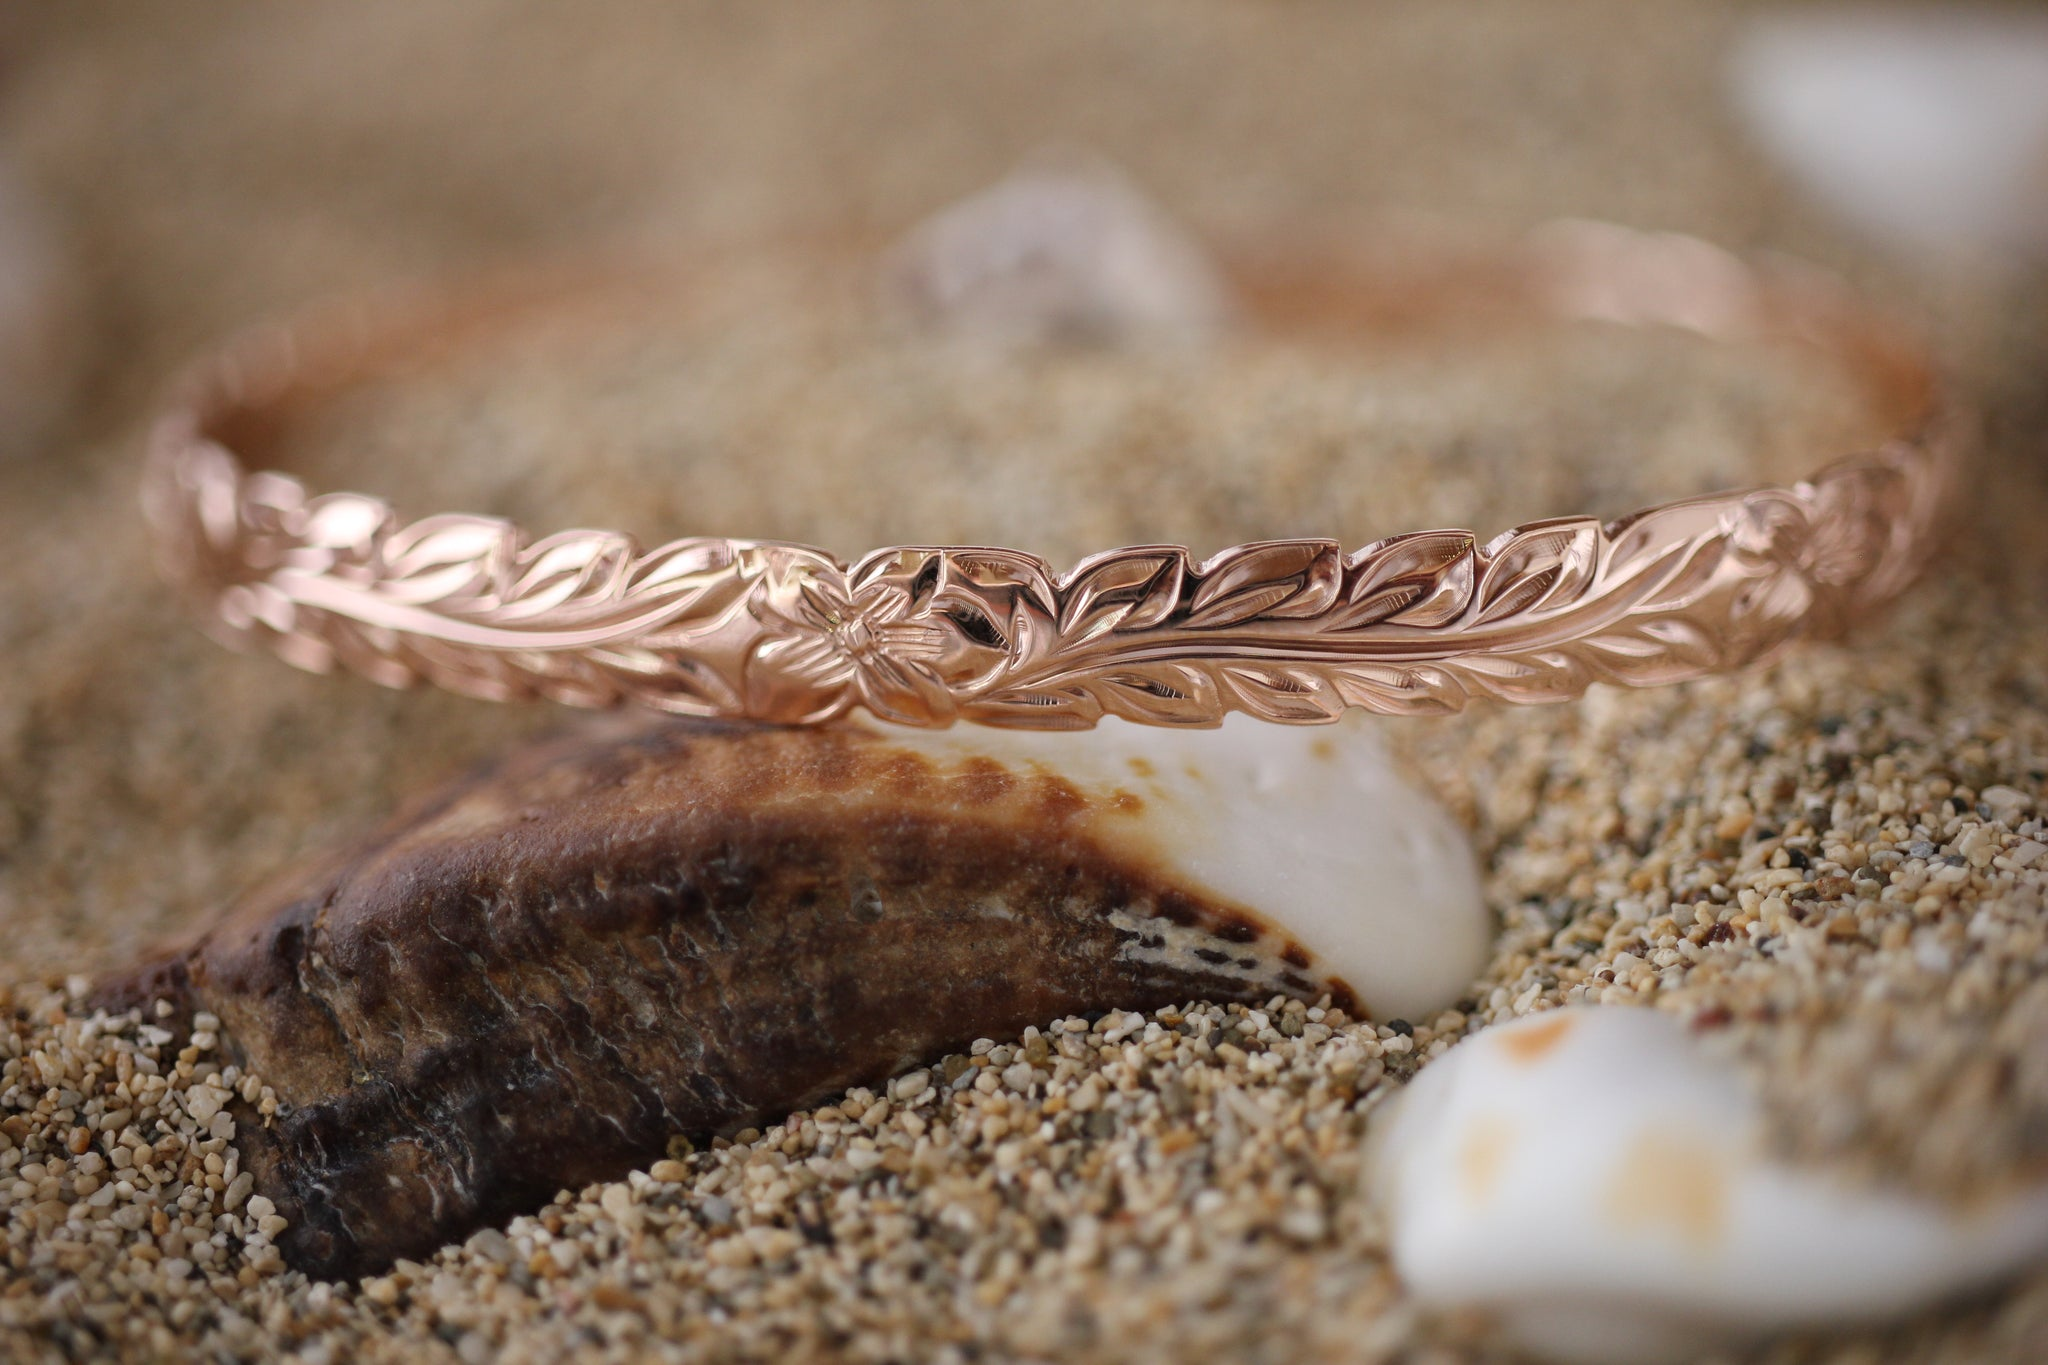 scallop maile heirloom jewelry hawaiian products rose hibiscus edge curved screenshot gold bracelet